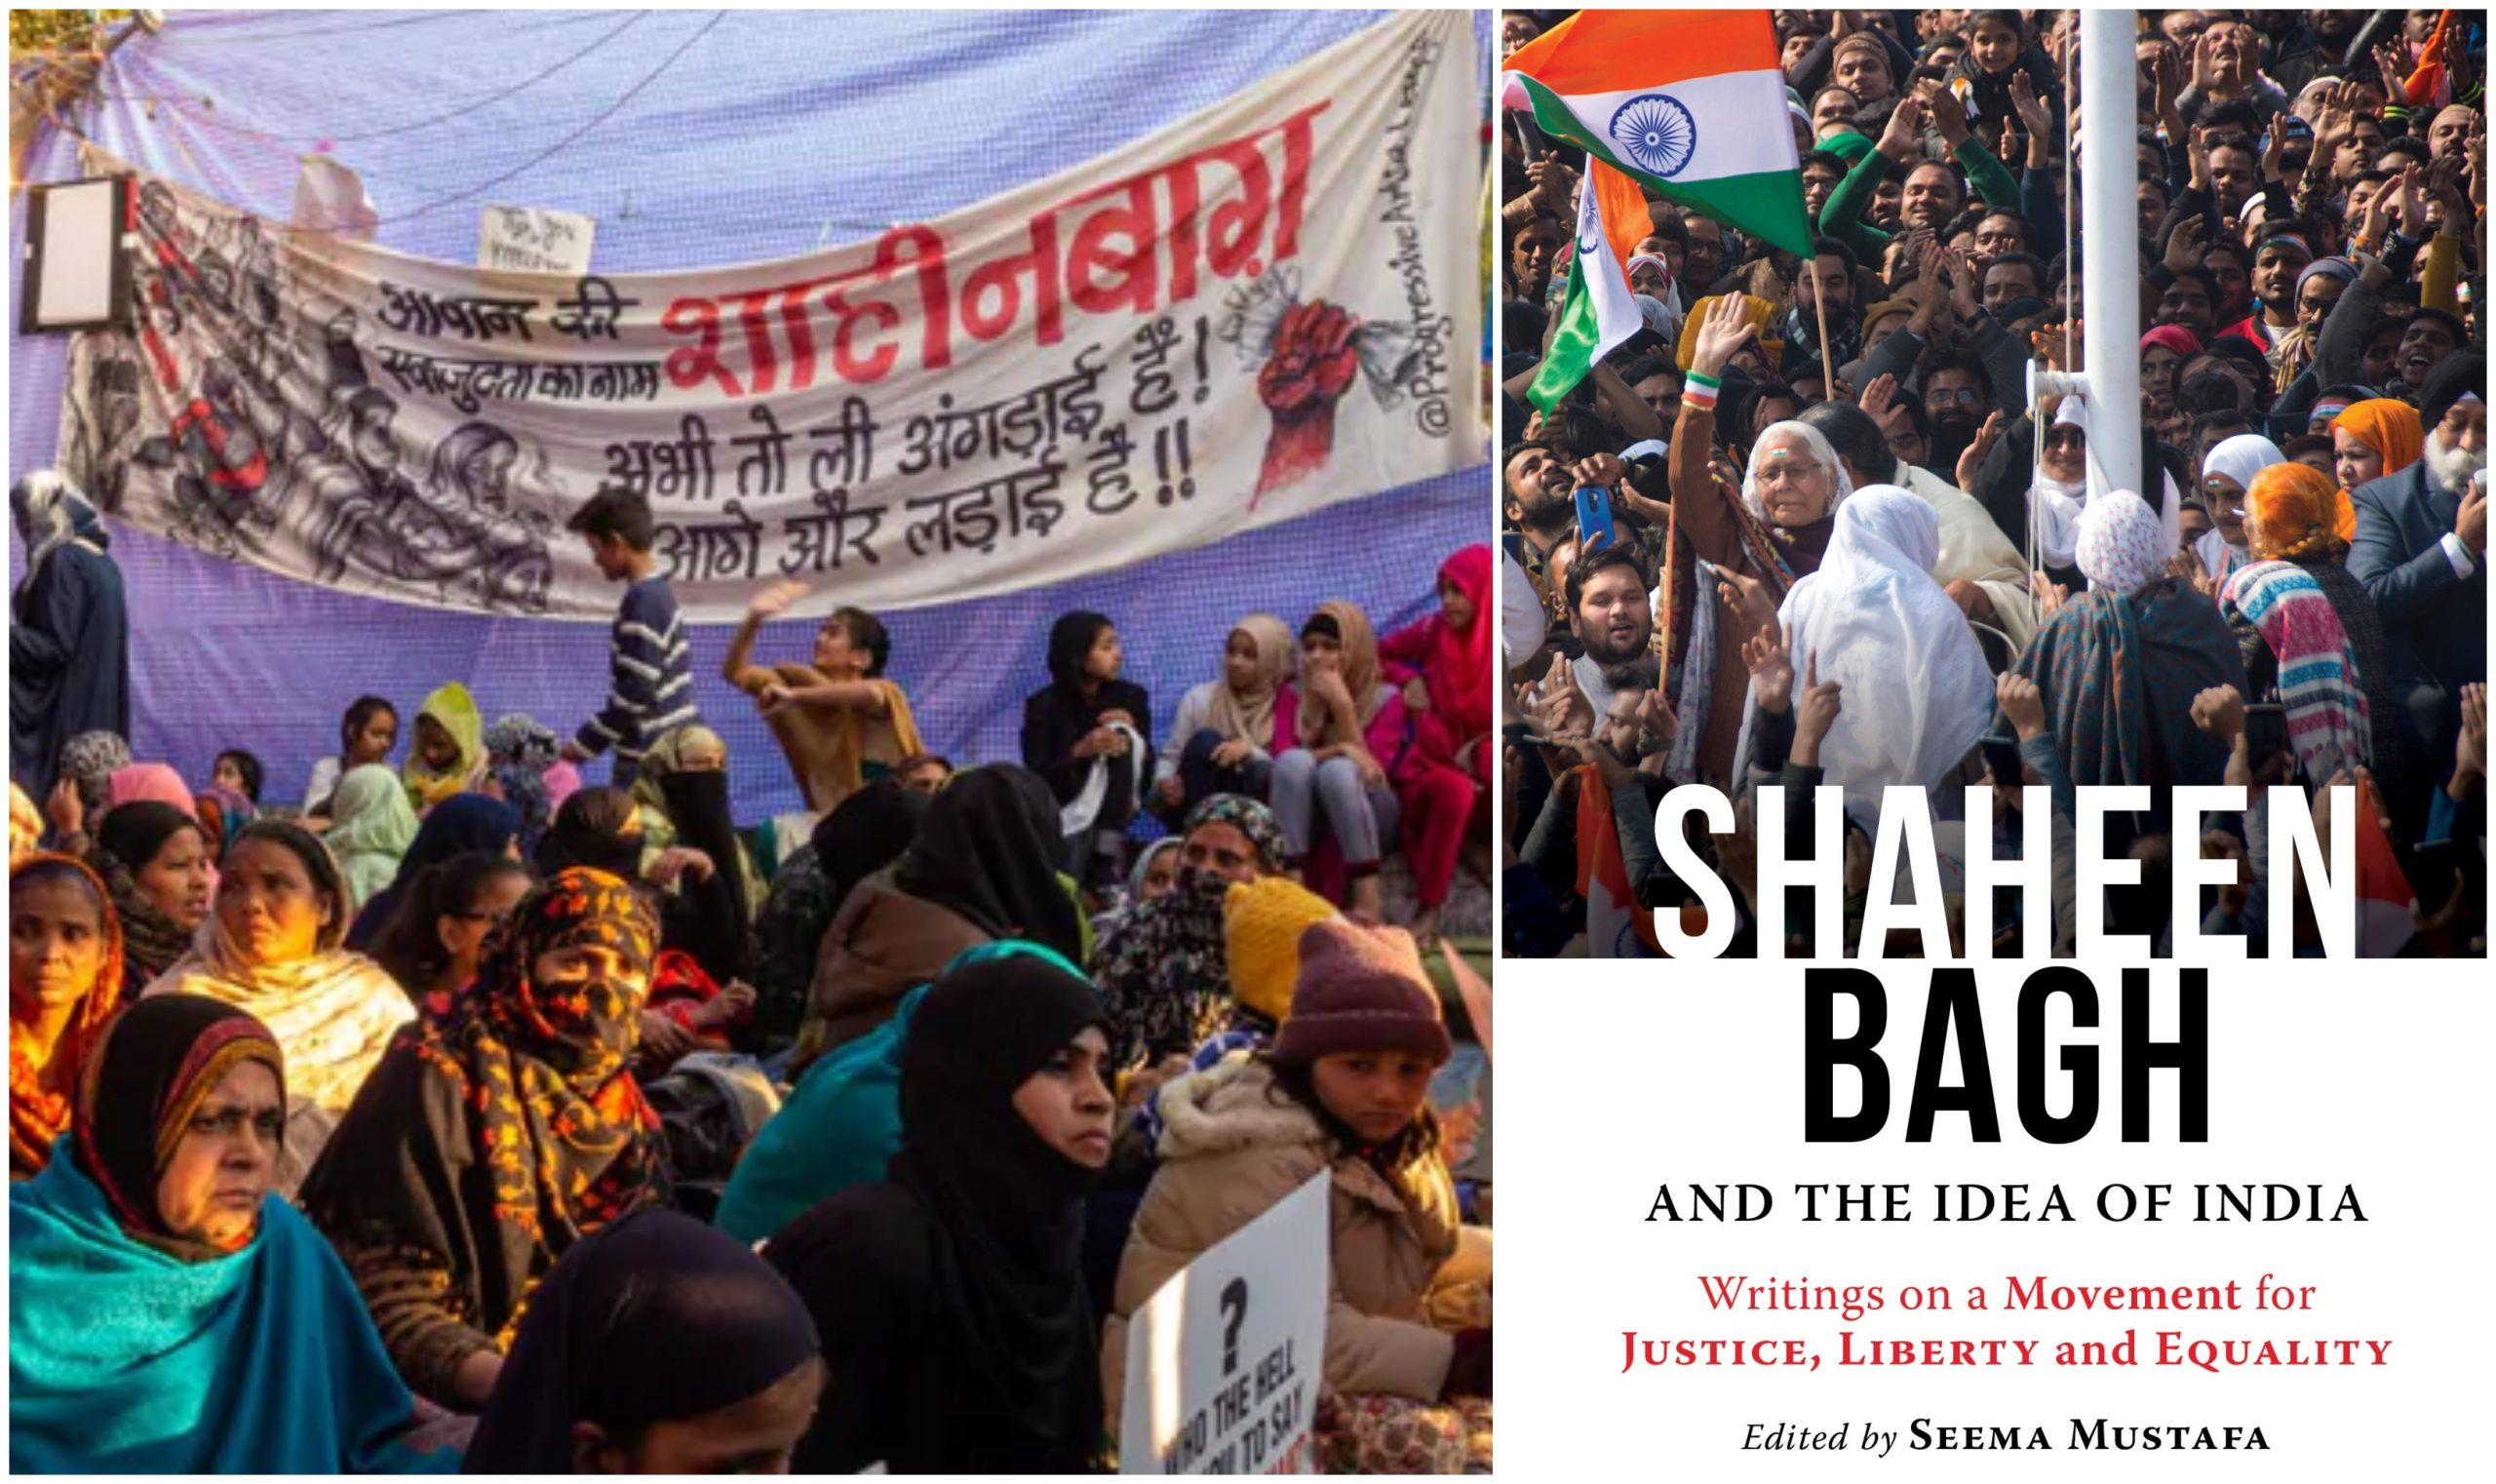 Book Review: Shaheen Bagh And The Idea Of India Ed. By Seema Mustafa